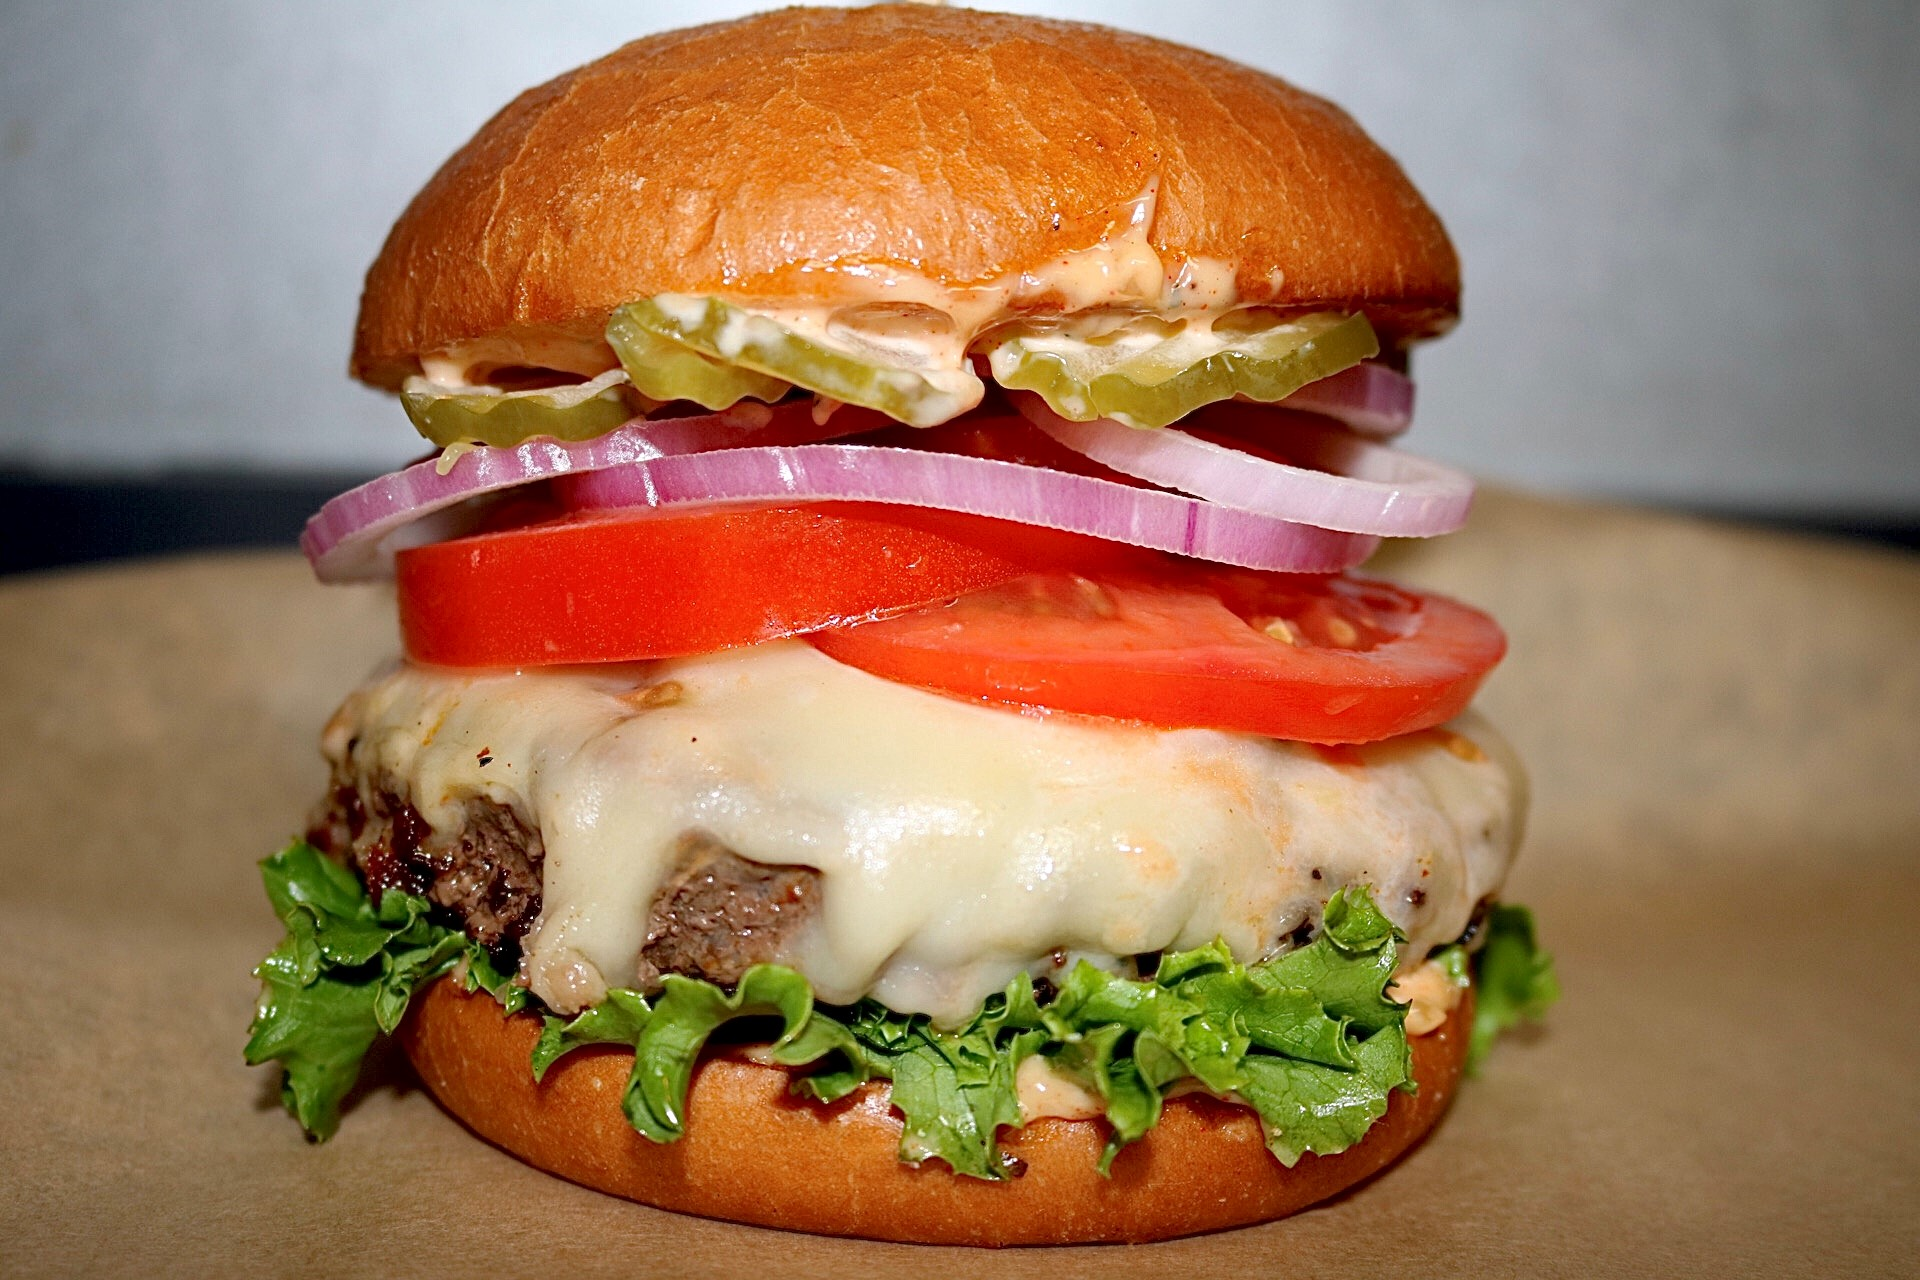 burger with melted cheese. red onion, tomato, lettuce, pickles and spicy sauce